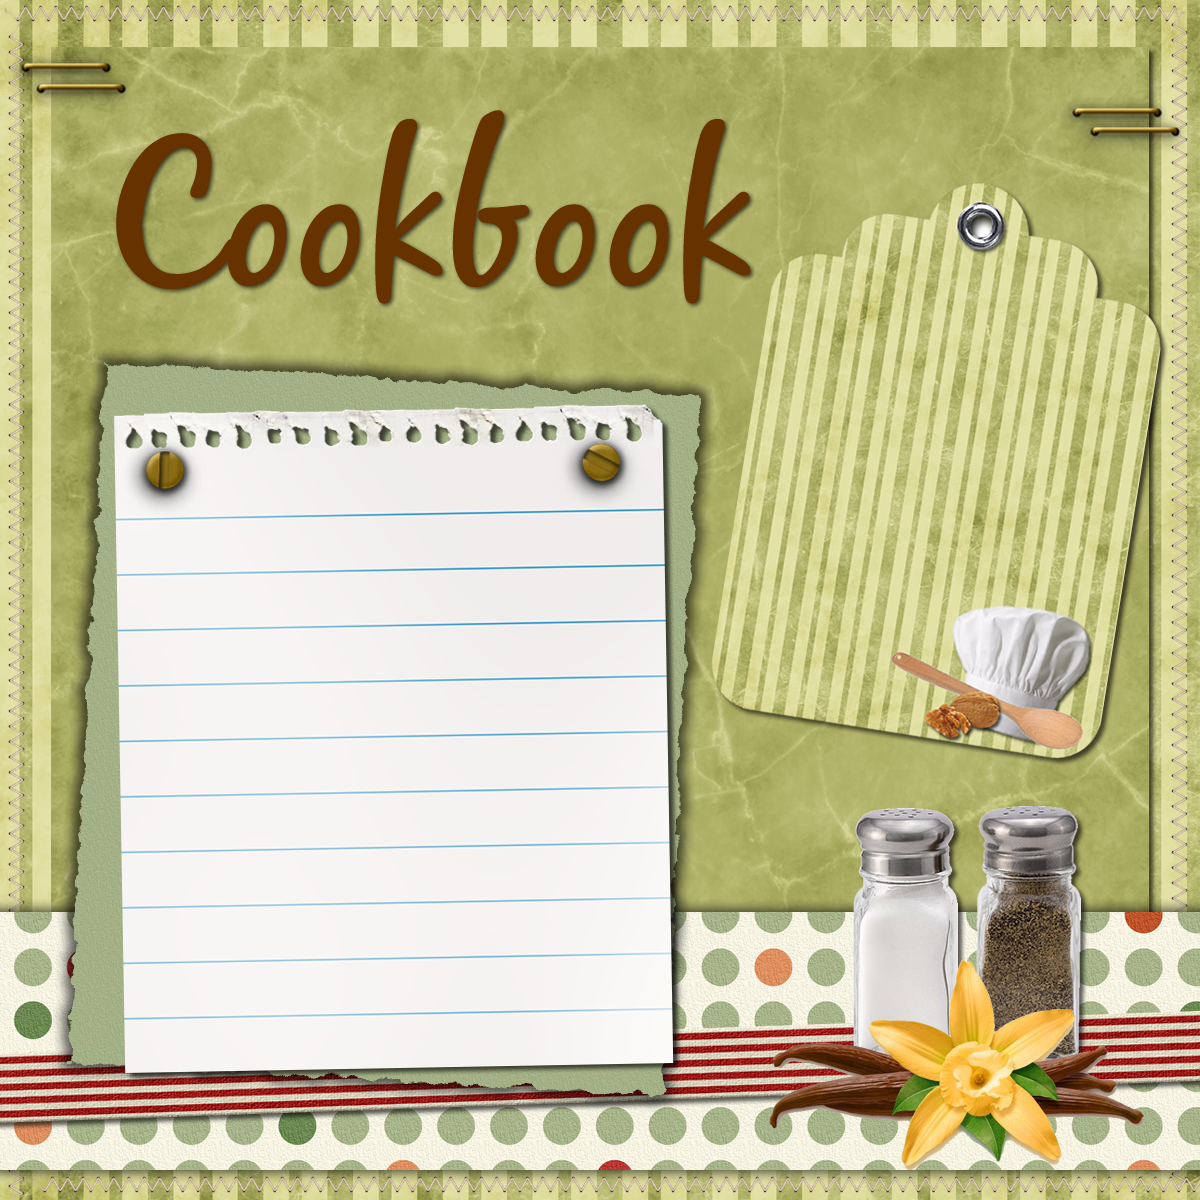 Kids Cookbook Cover ~ The gallery for gt kids cookbook cover design